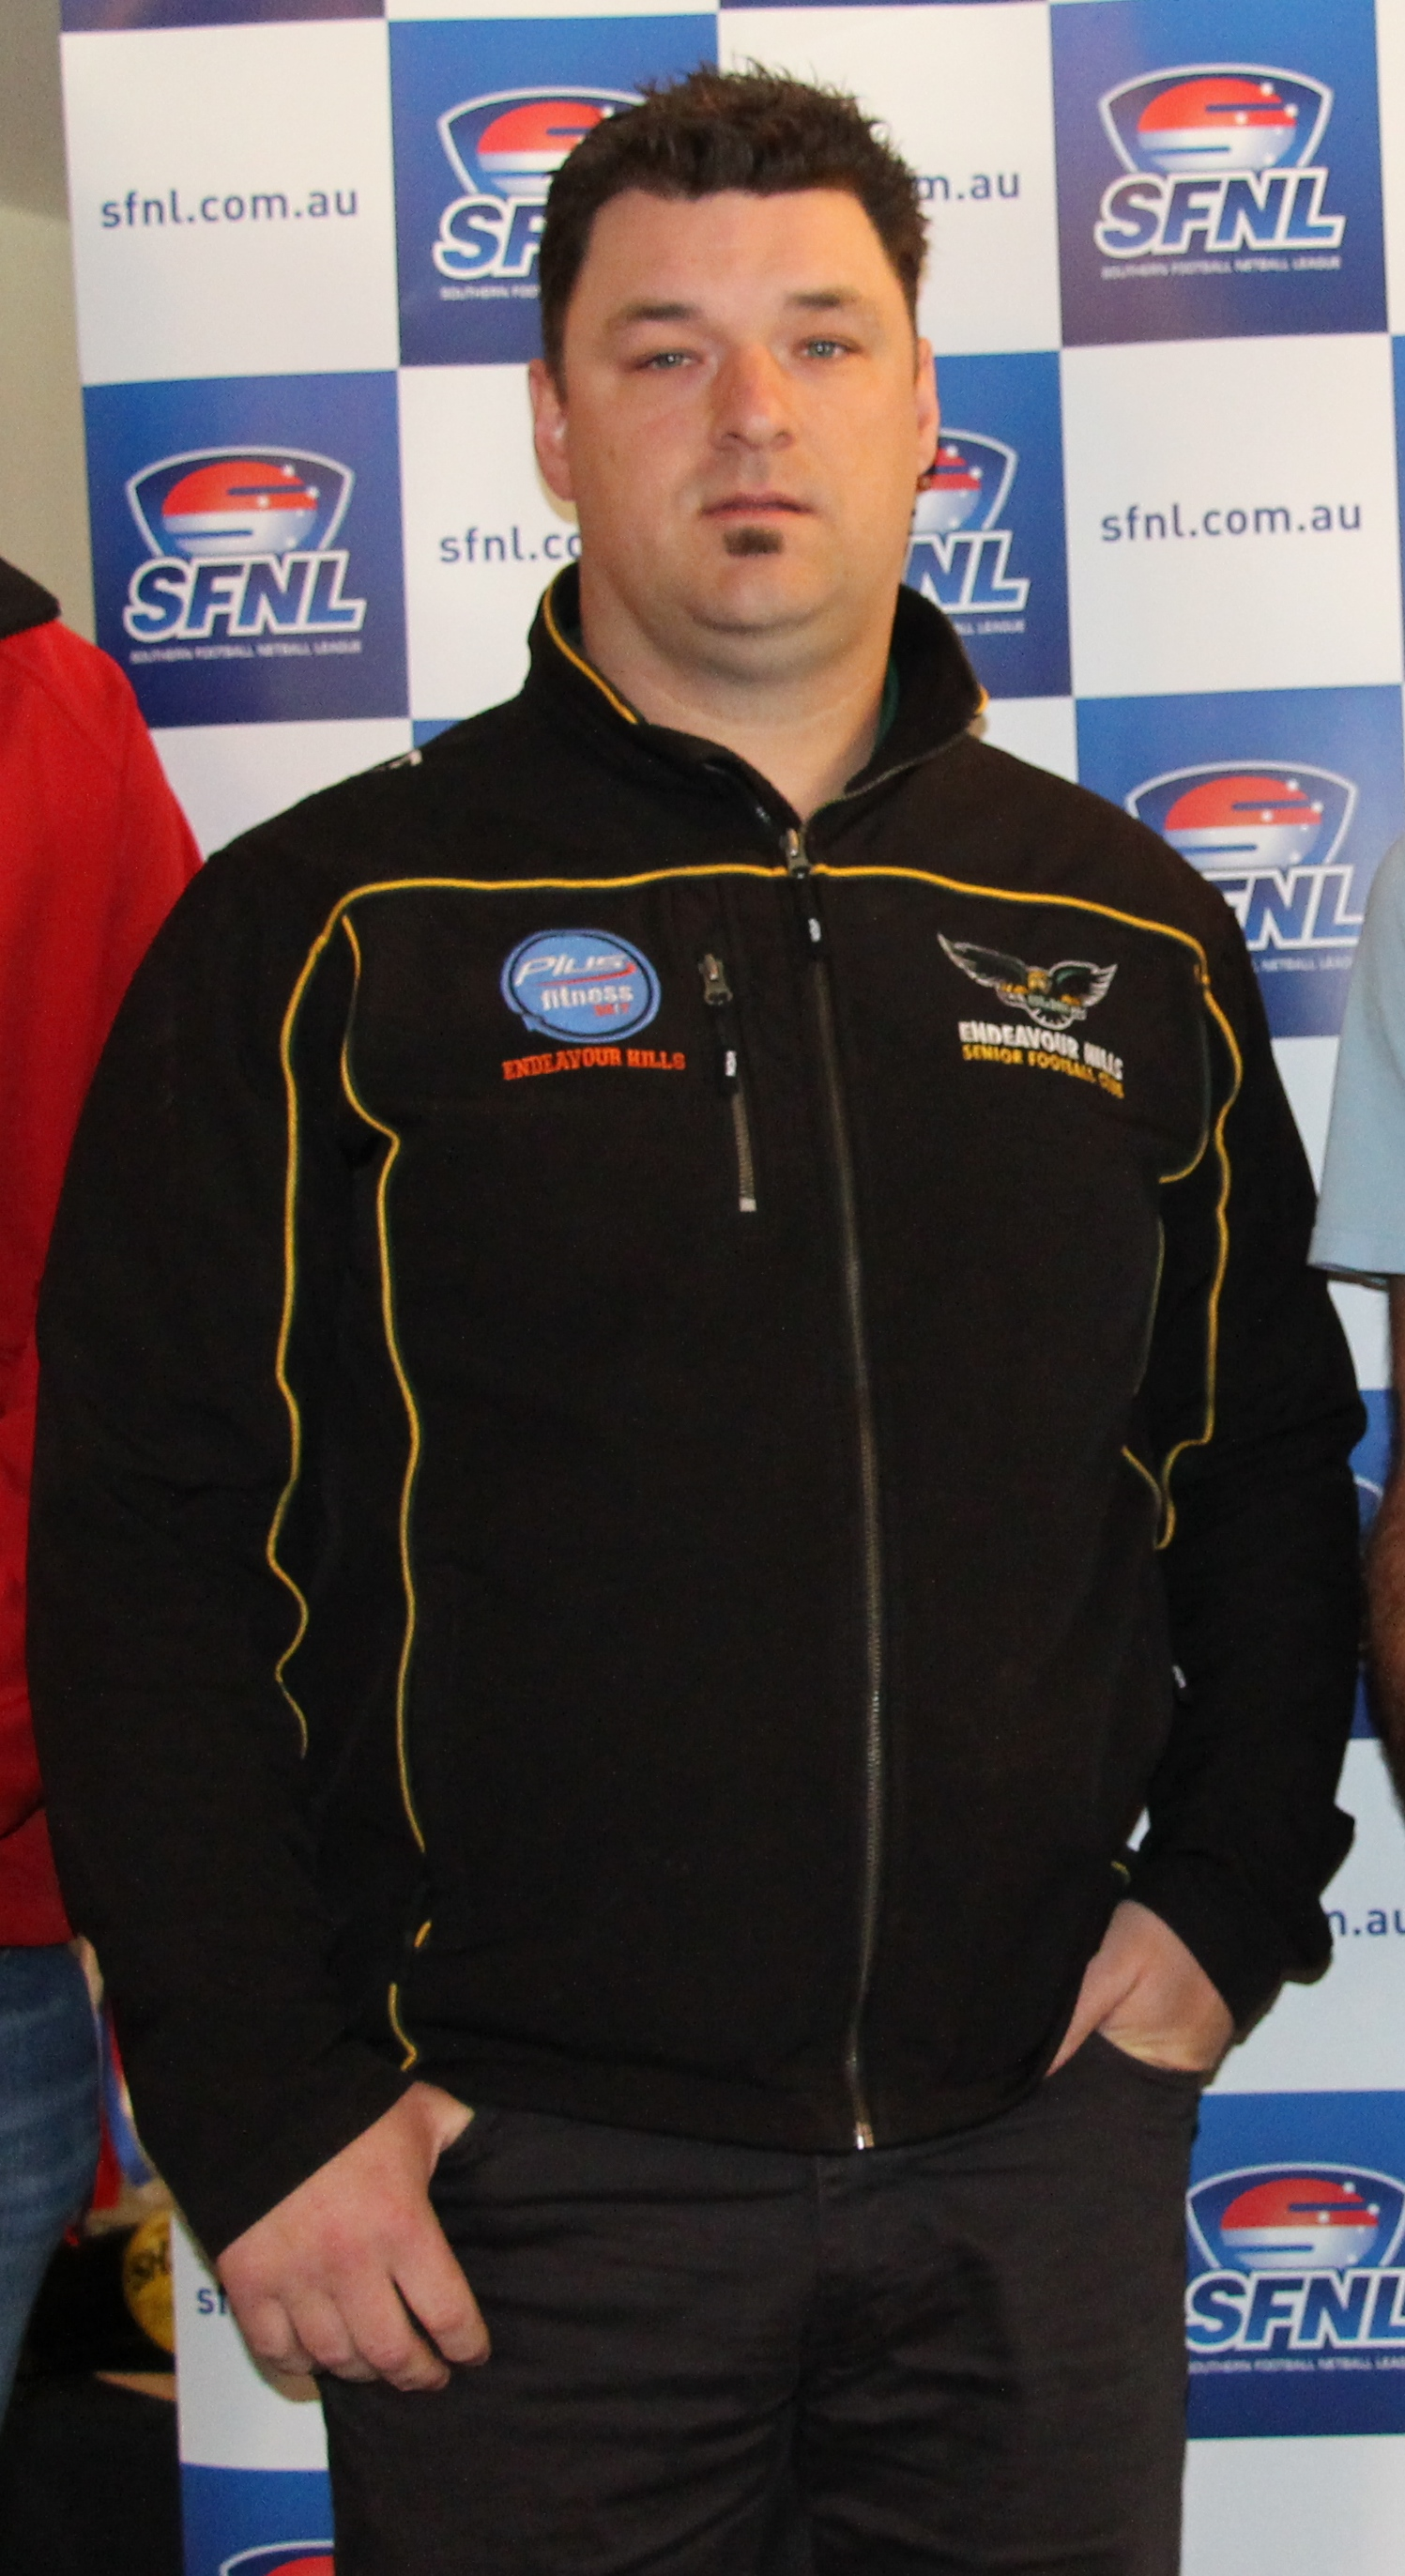 Rob Dipper led the Falcons to a maiden Grand Final in his first season in charge.